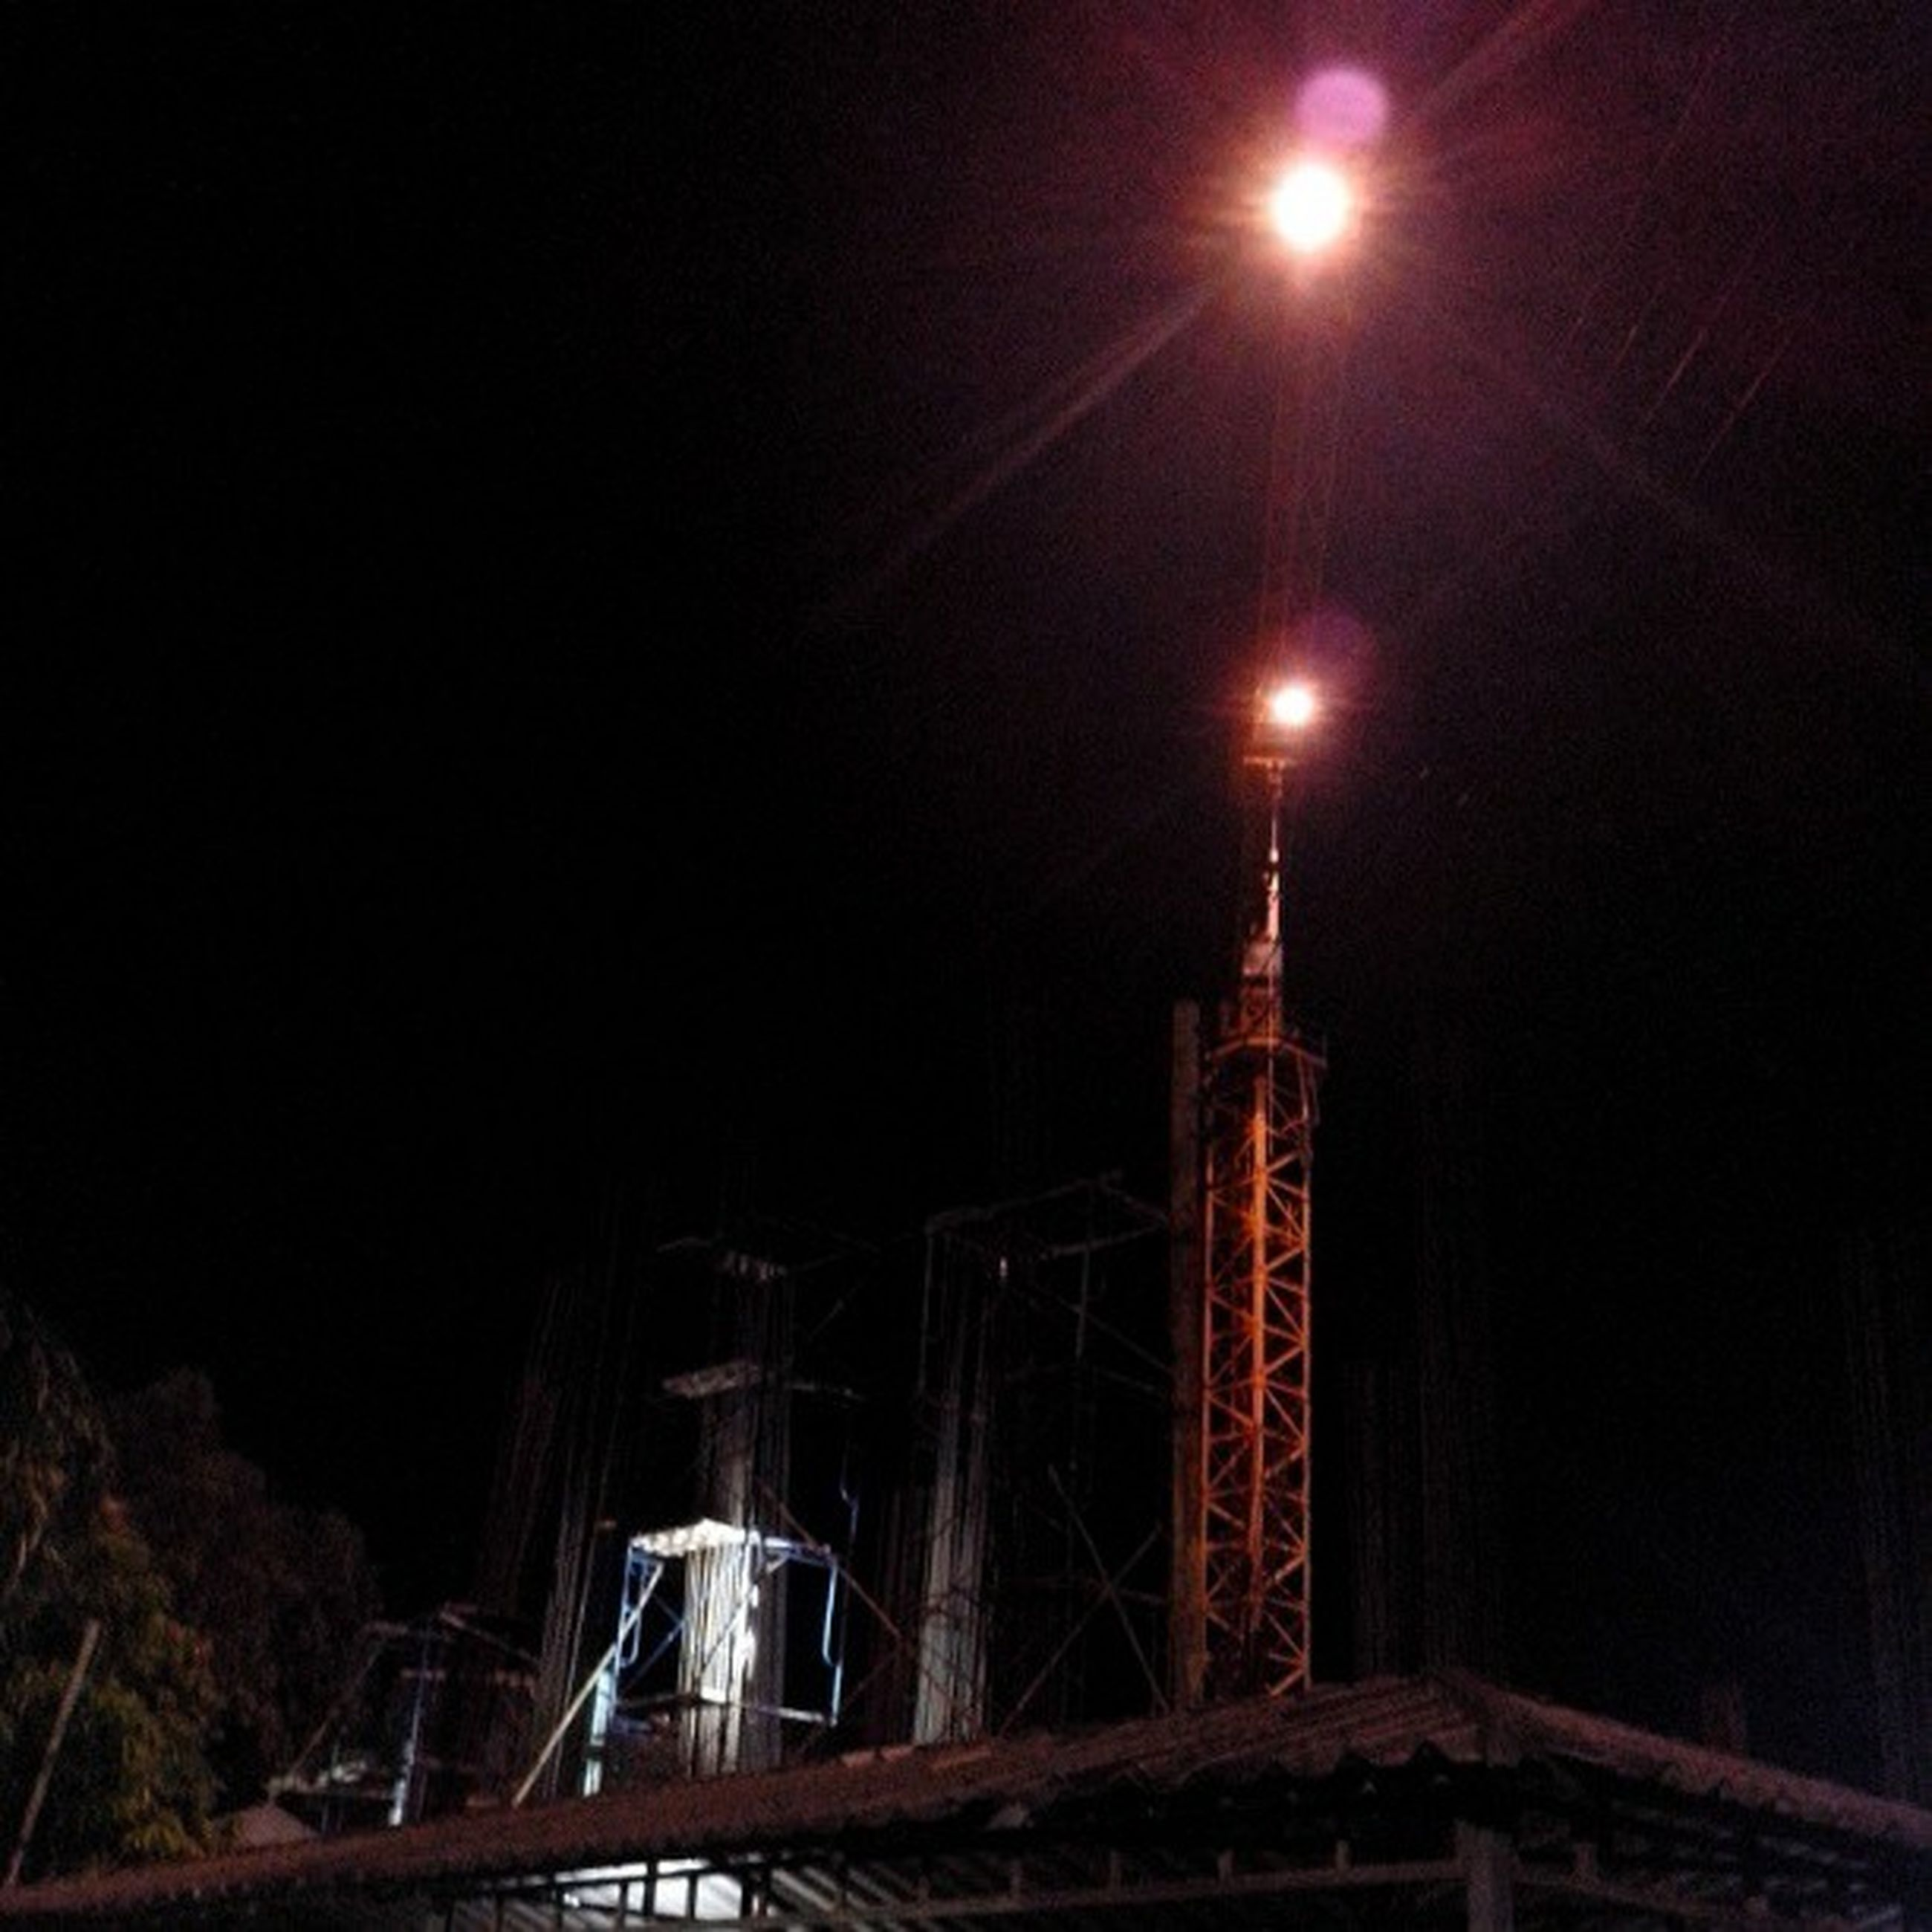 night, built structure, illuminated, architecture, low angle view, building exterior, tall - high, sky, city, tower, development, travel destinations, skyscraper, modern, outdoors, construction site, crane - construction machinery, connection, no people, capital cities